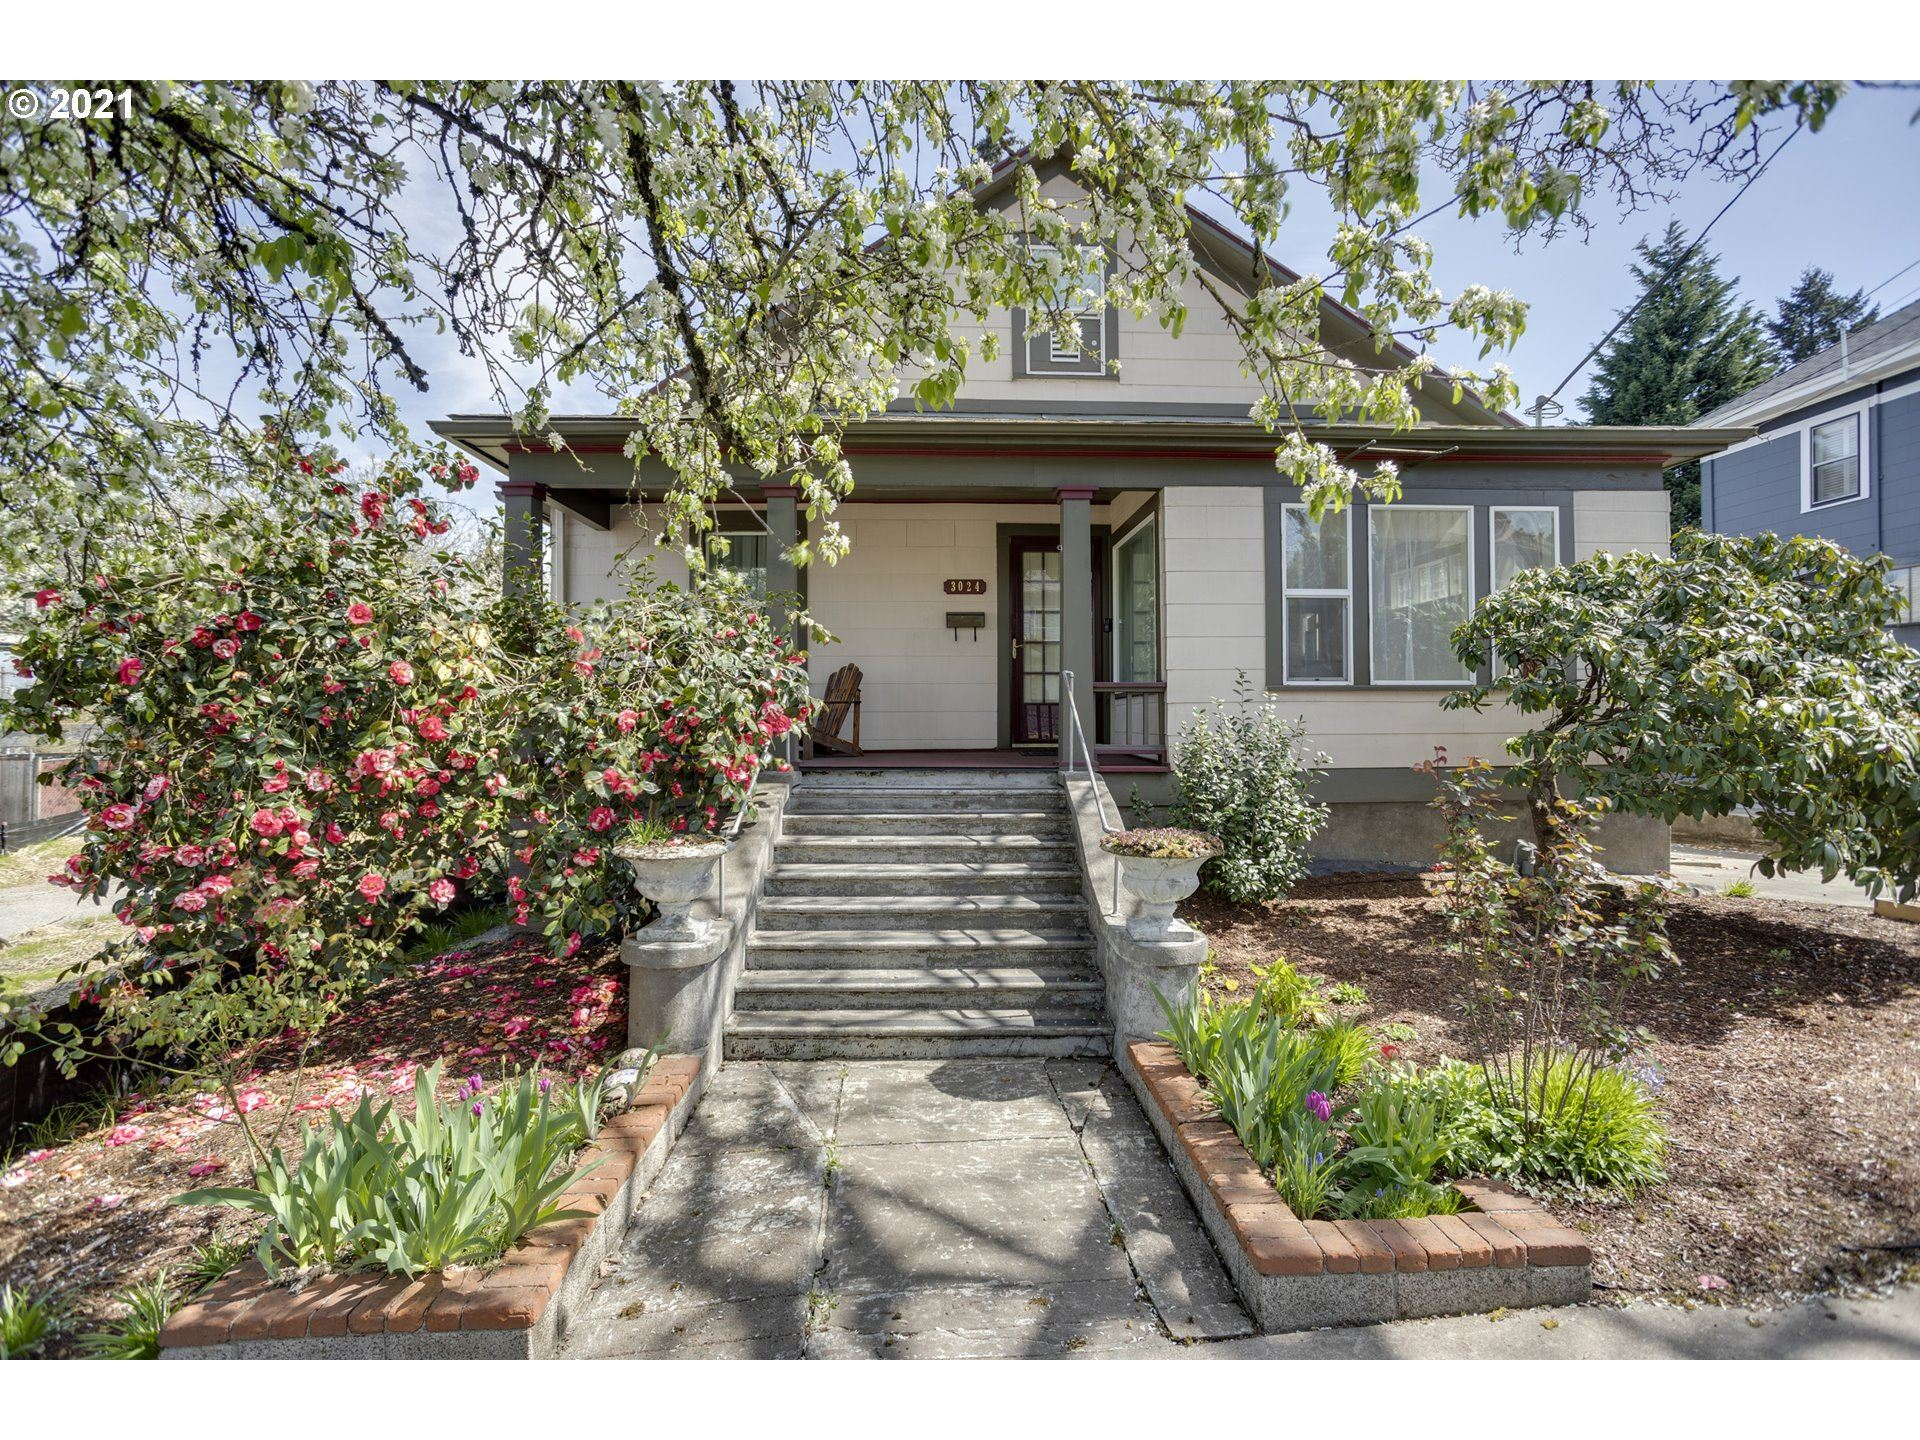 3024 SE 8TH AVE, Portland, OR 97202 - MLS#: 21622330